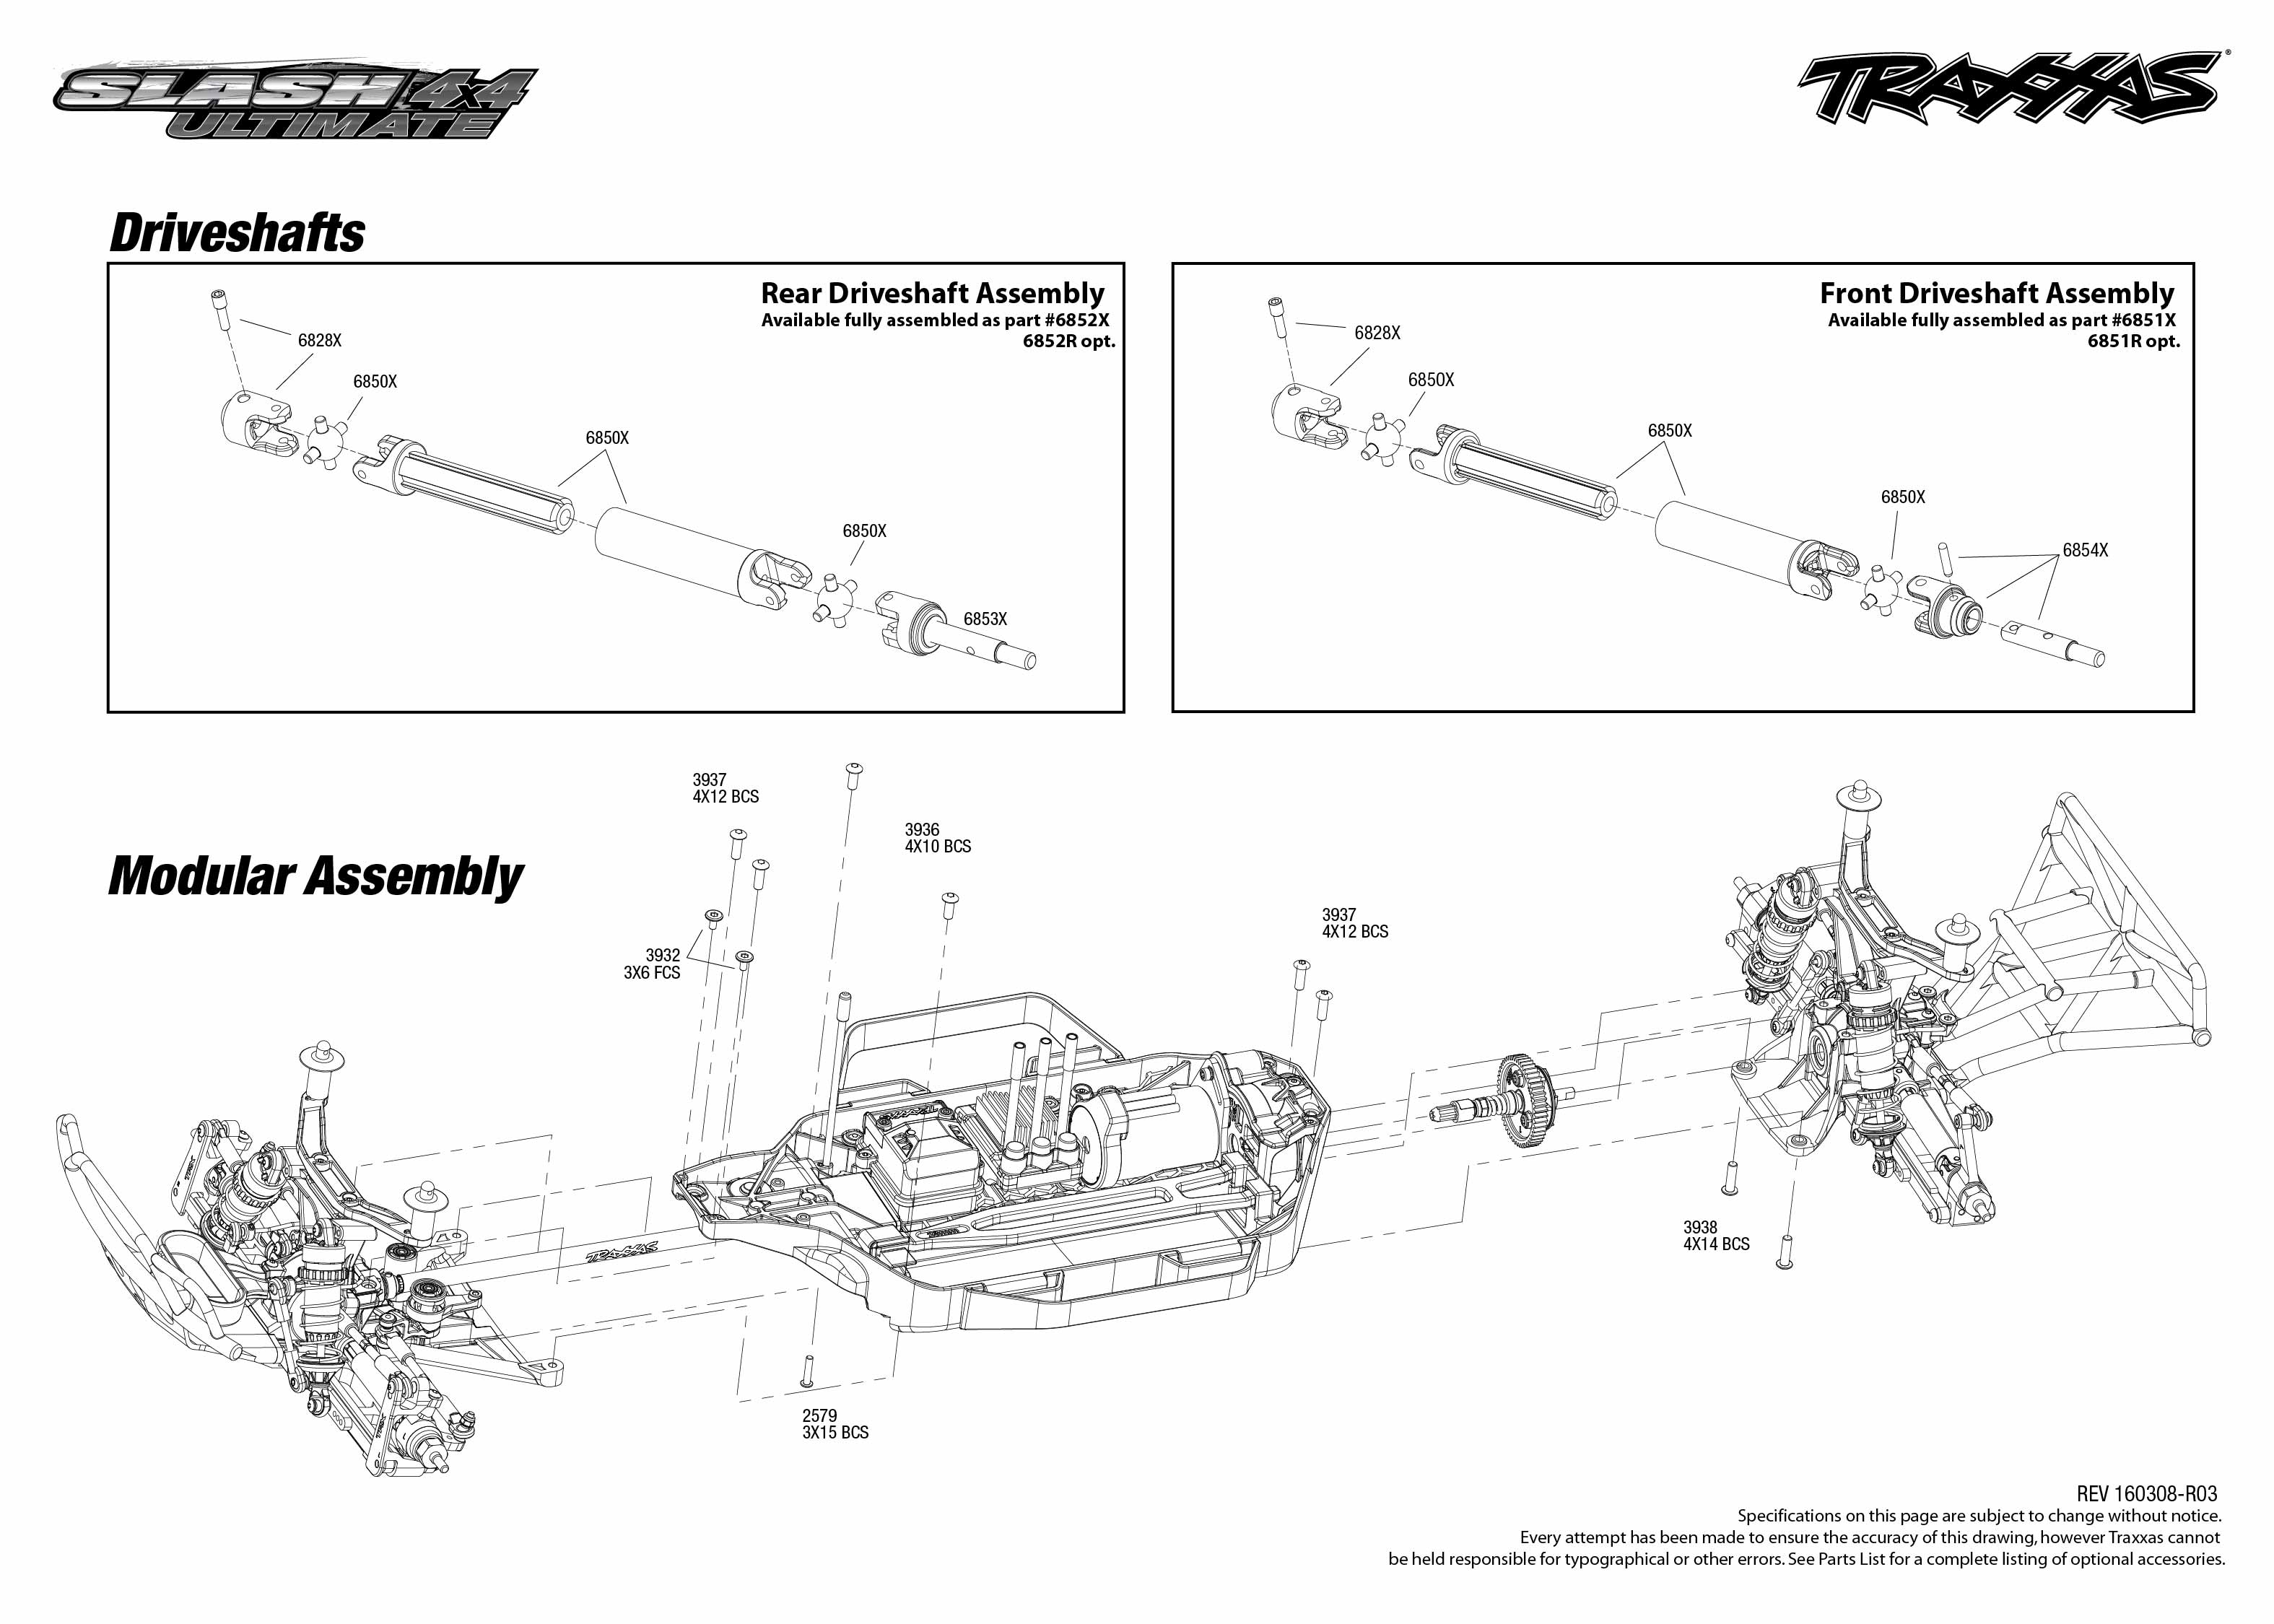 Slash 4X4 Ultimate (68077-1) Driveshafts Assembly Exploded View ...